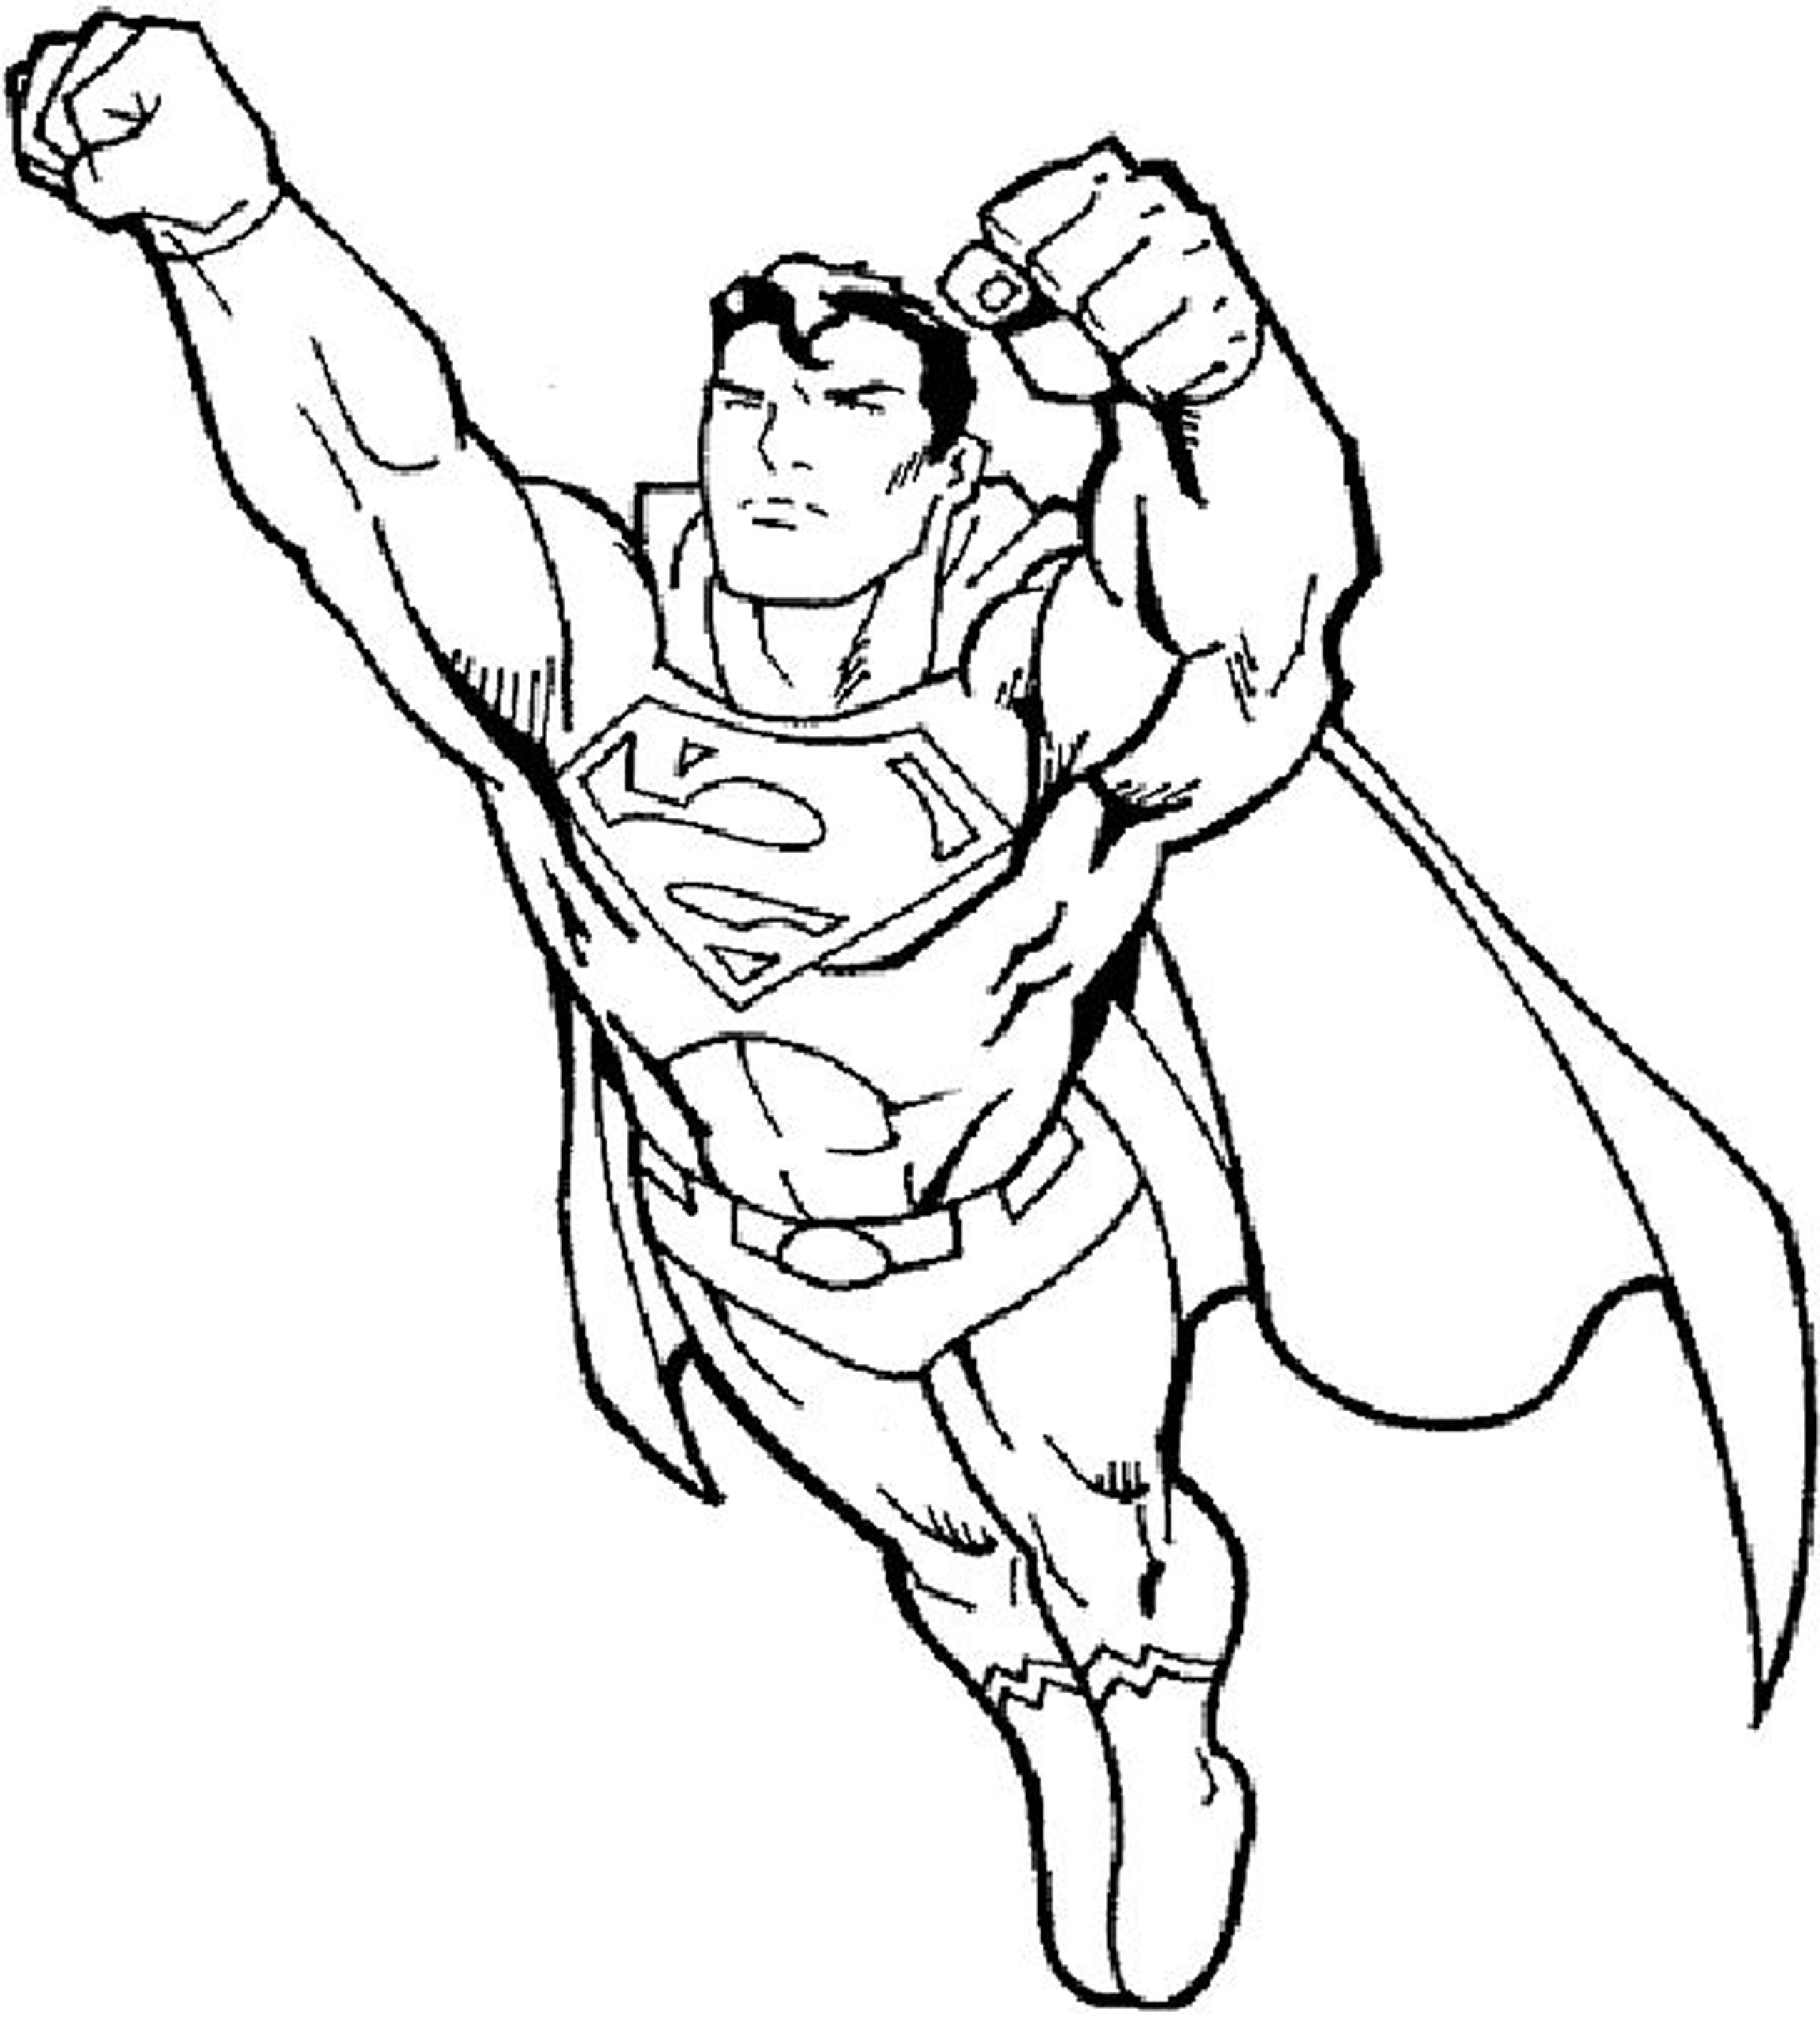 Superman Sign Drawing at GetDrawings.com   Free for personal use ...